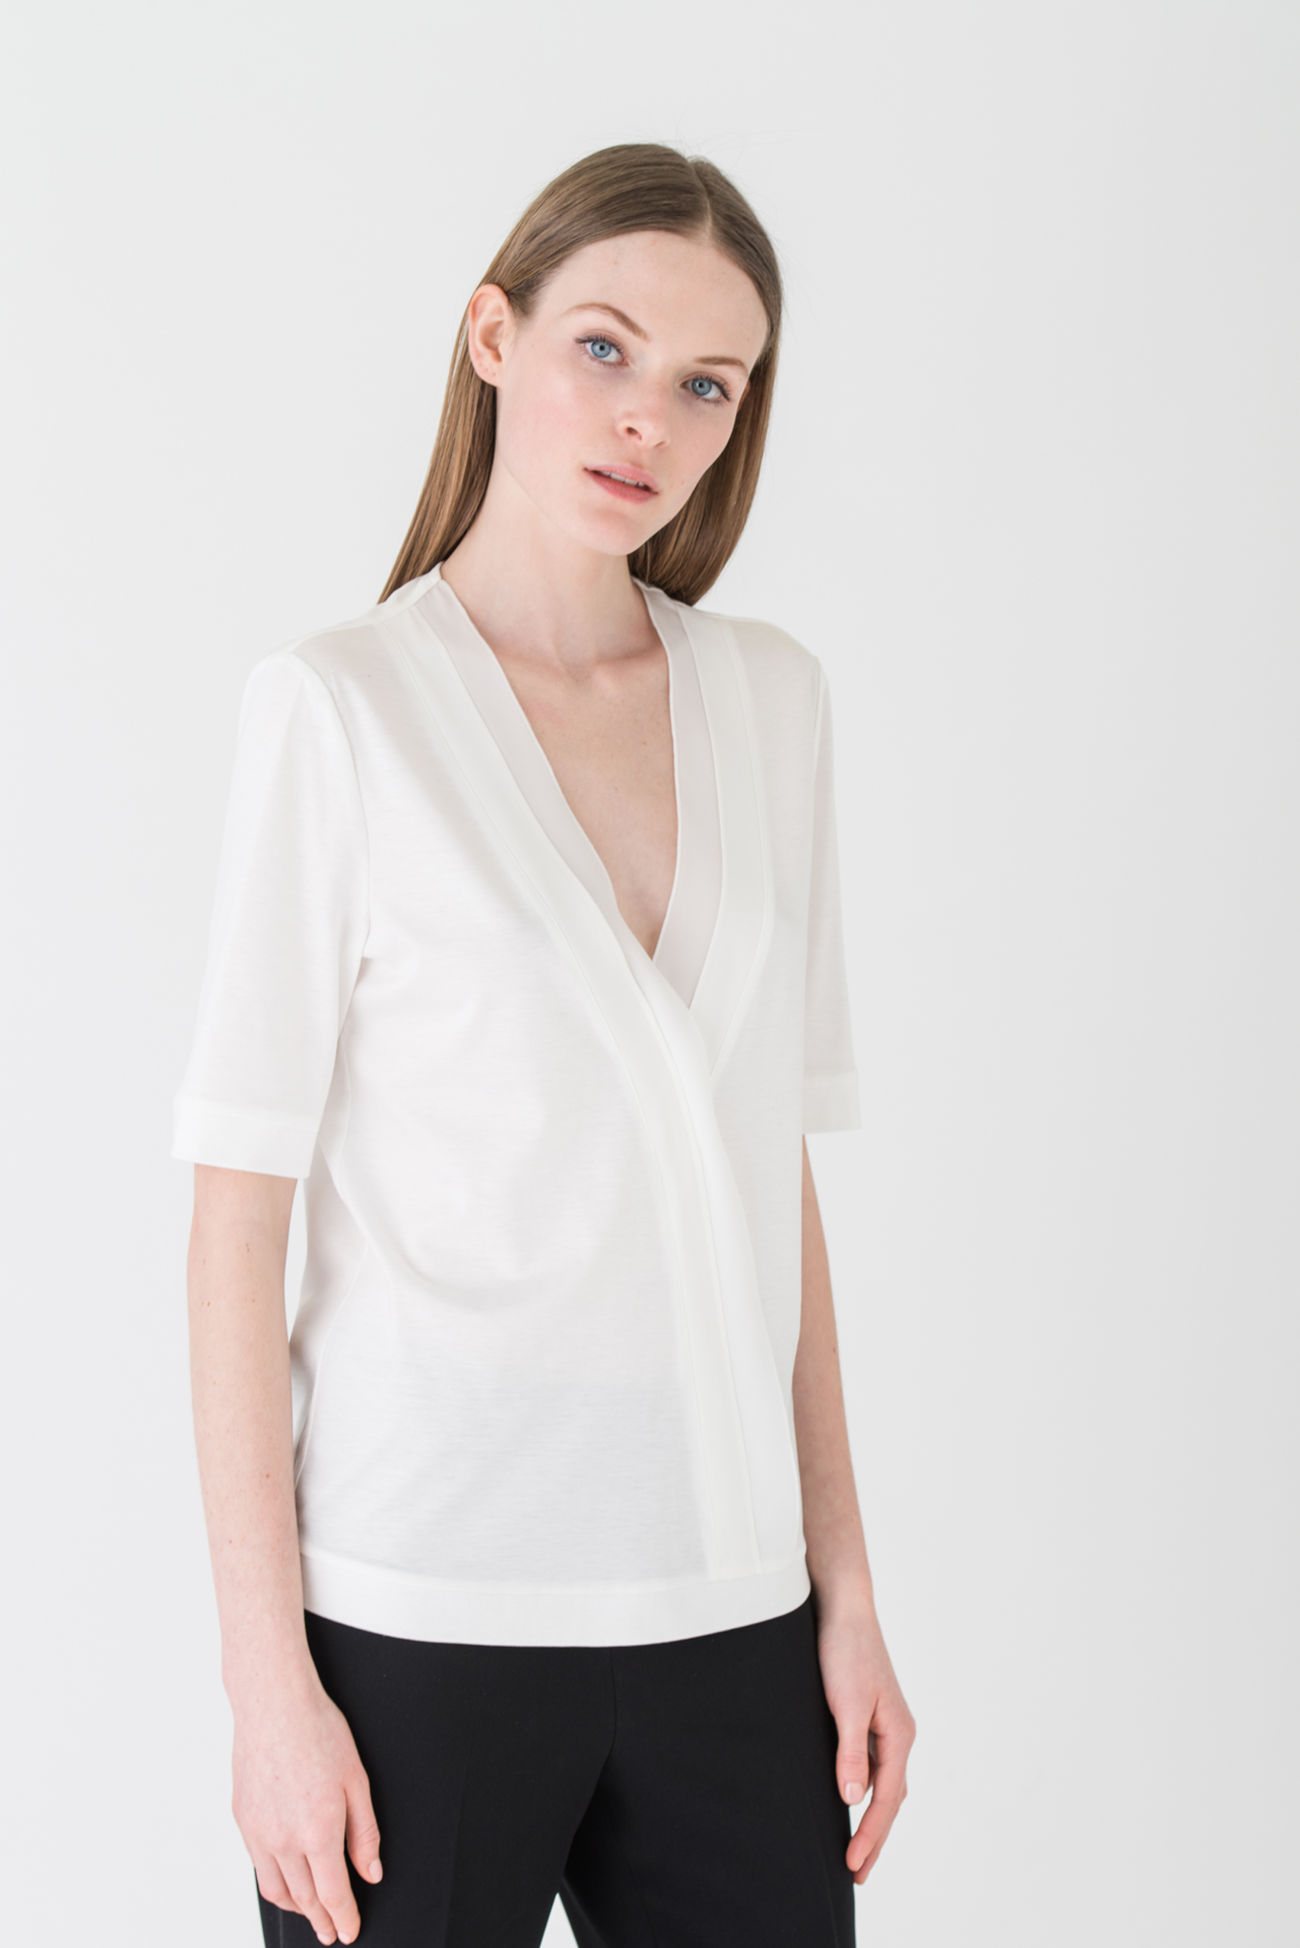 Extraordinary, fine basic top made of a lyocell blend